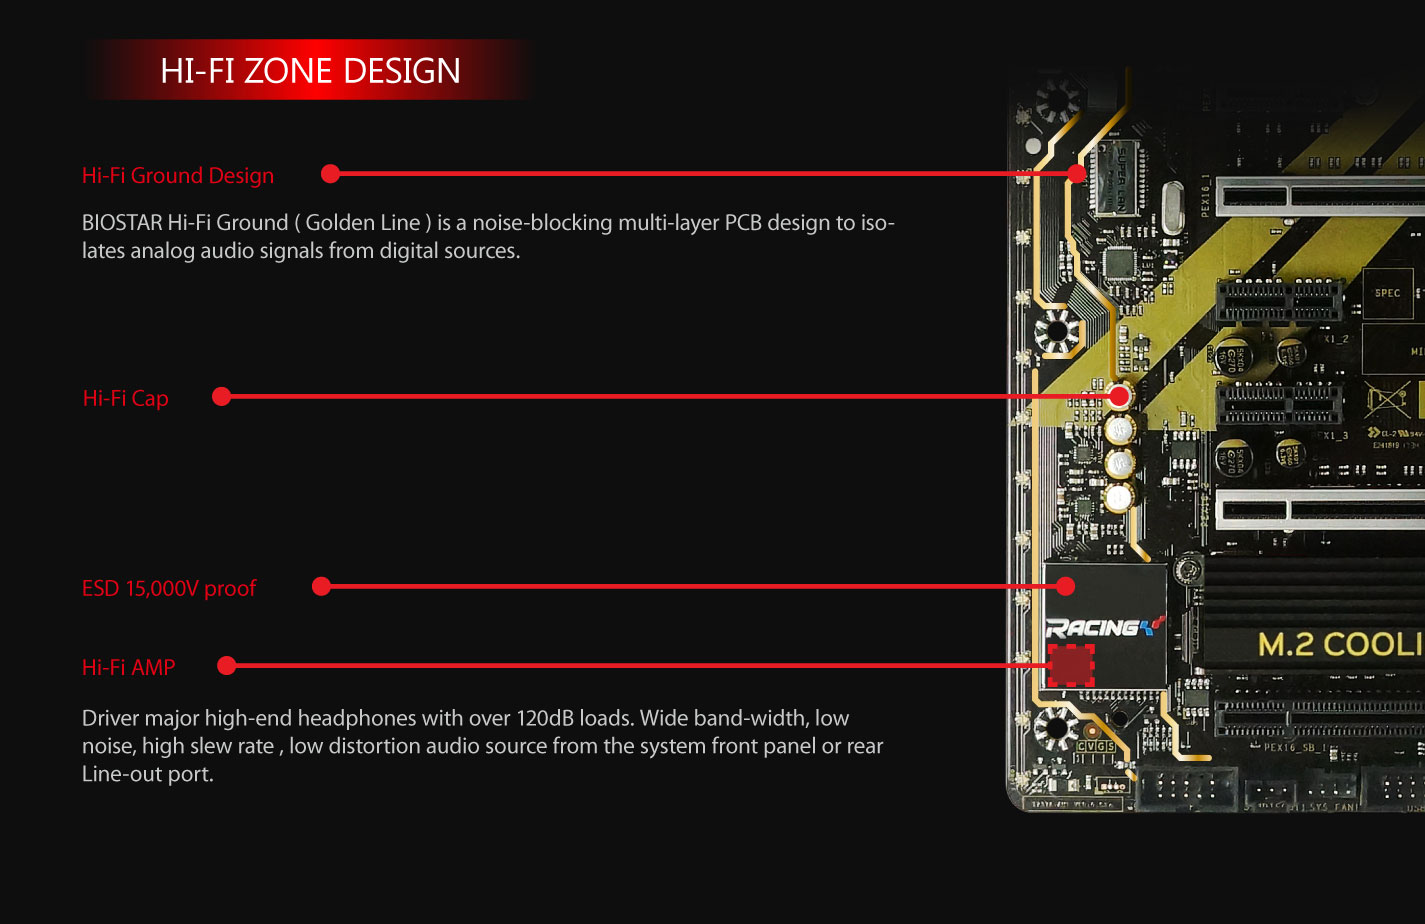 Intel Z370 Series Large Screenshoot Of Merlin Pcb Designer Hi Fi Zone Design For An Exceptional Audio Experience